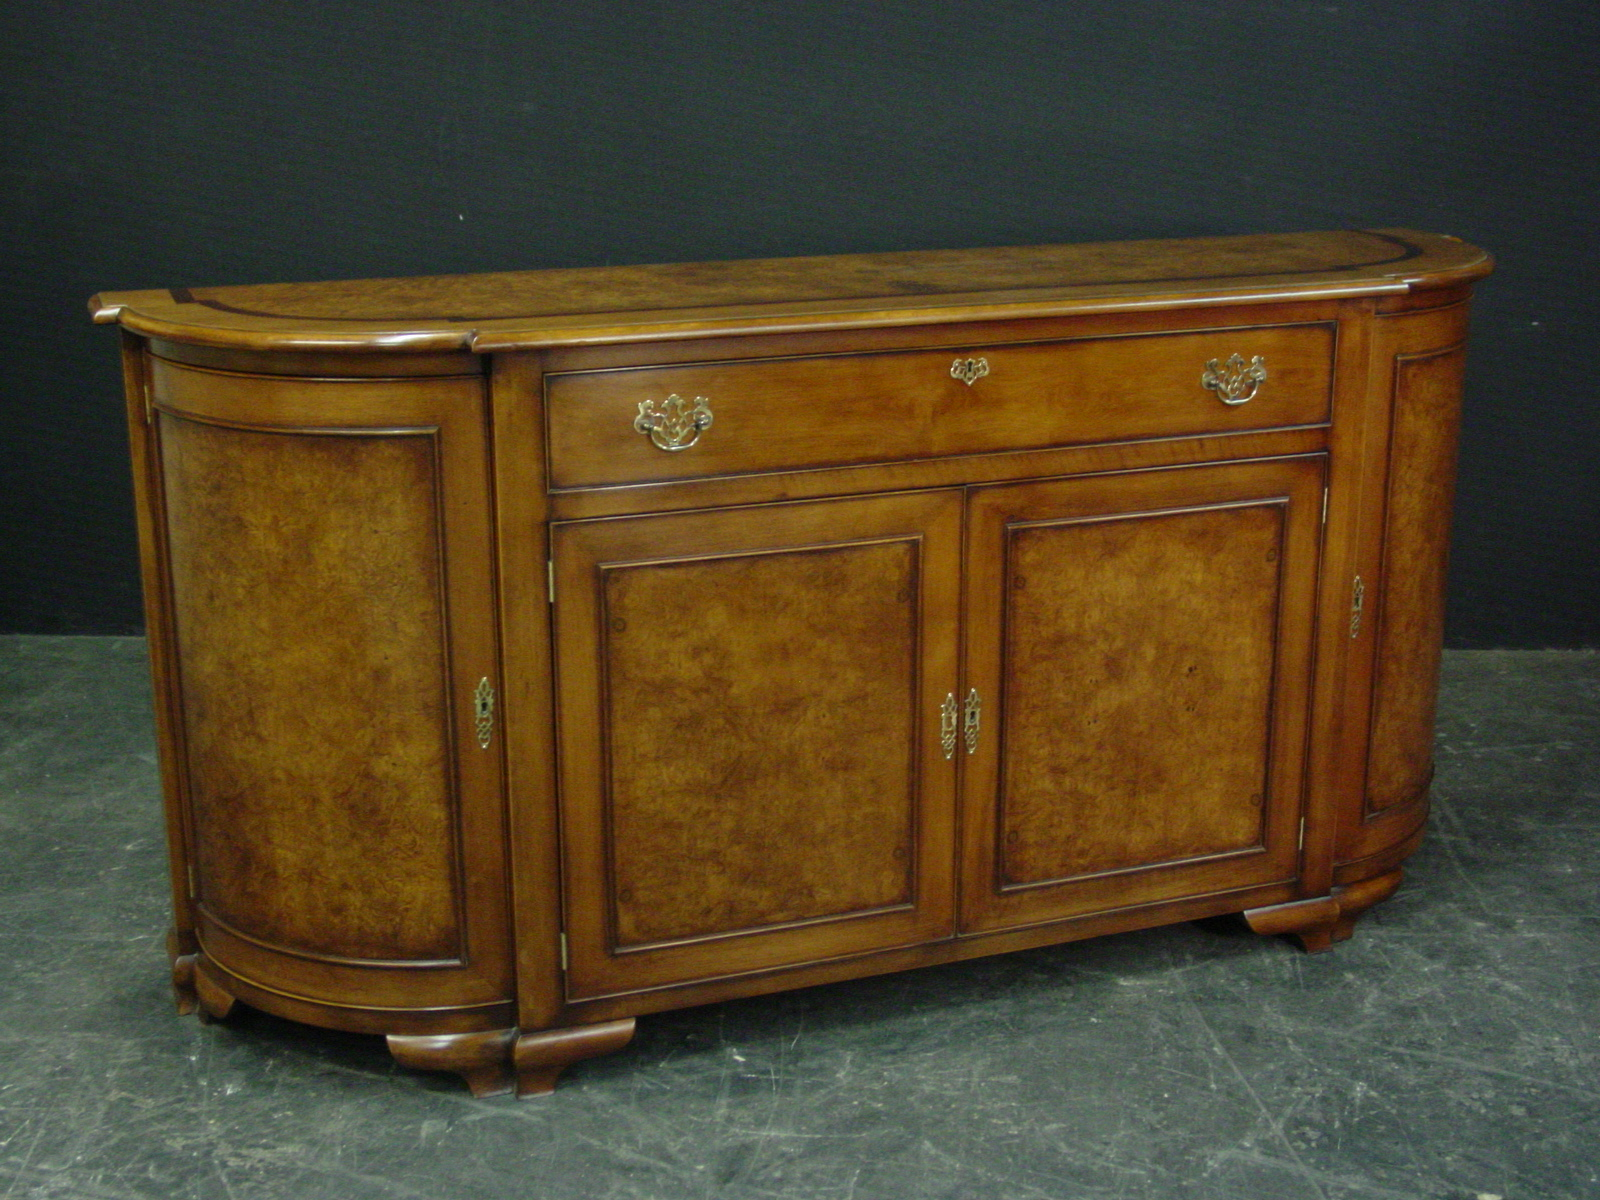 Burl walnut custom made sideboard with rounded ends